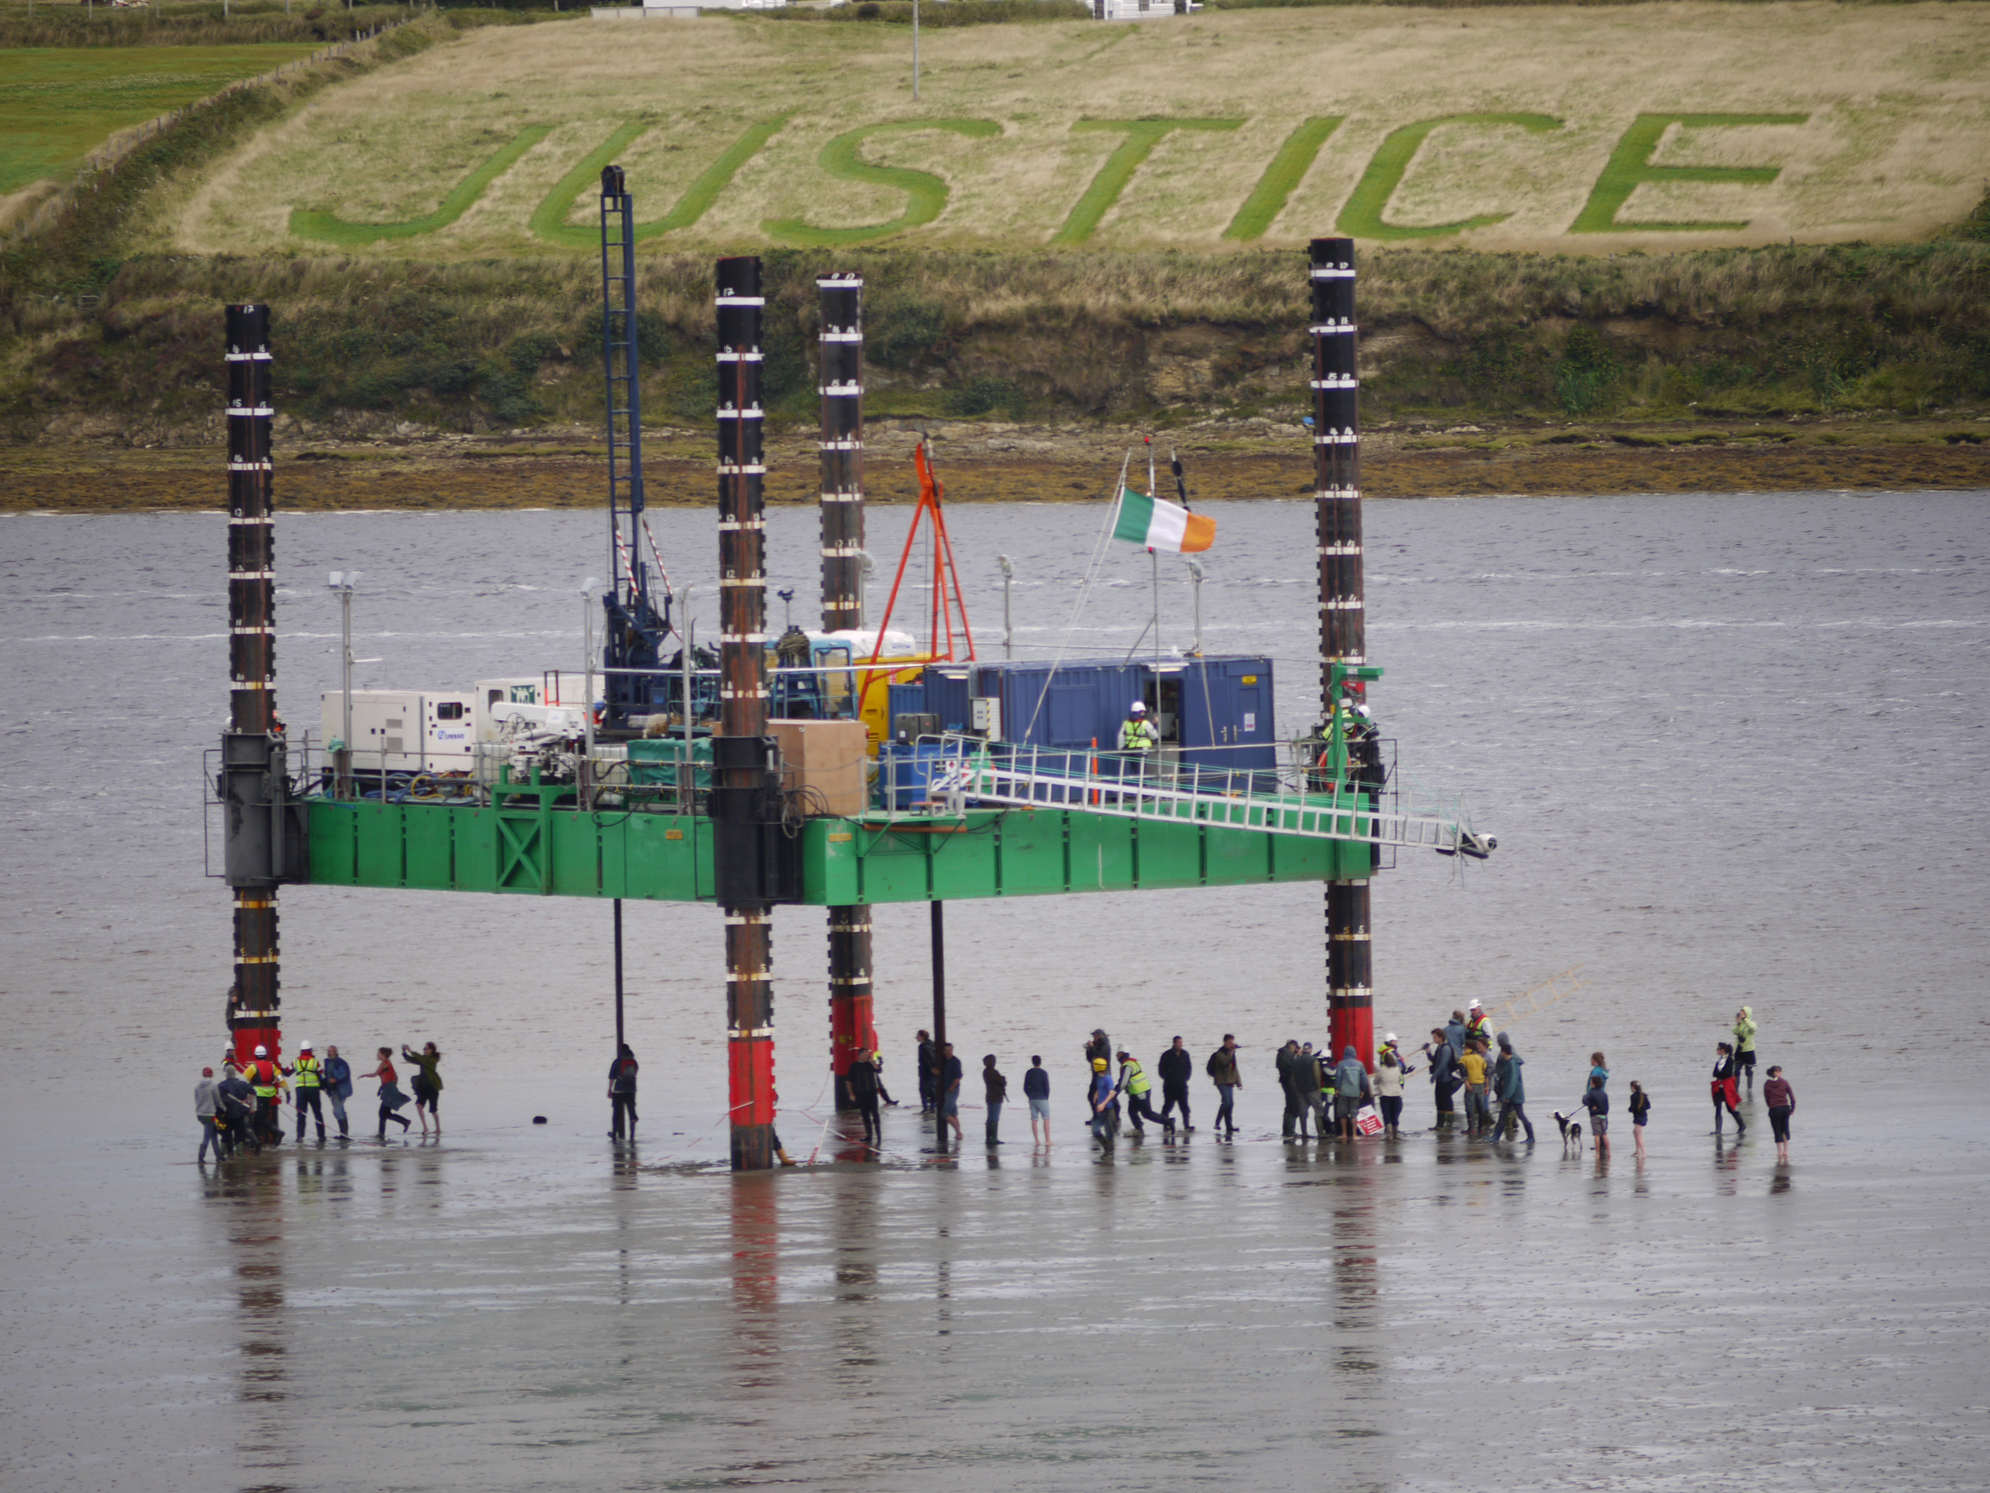 Justice & Stopping Shell drilling